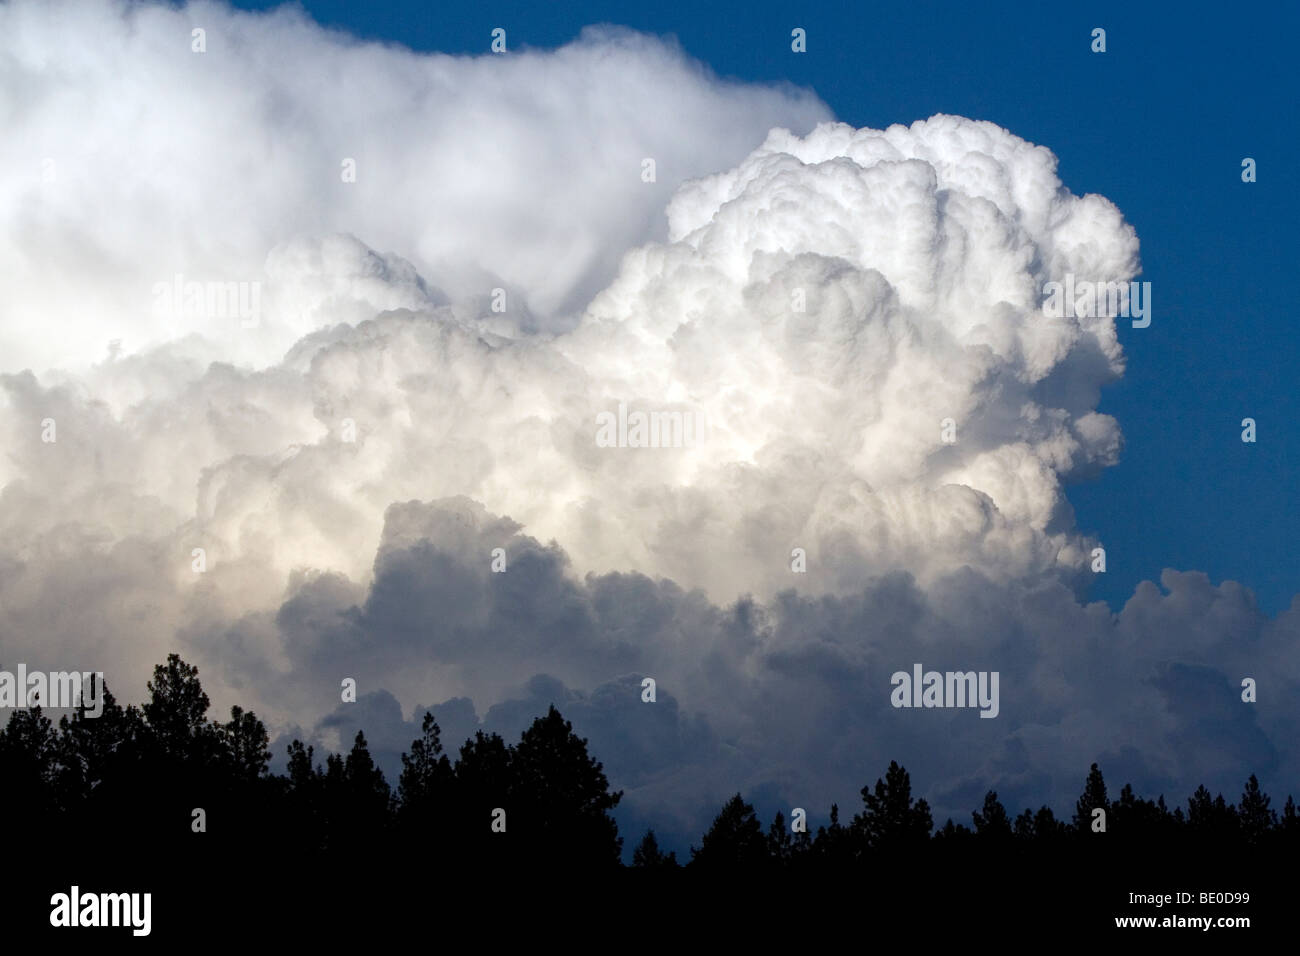 Cumulonimbus thunderstorm clouds form near Cascade, Idaho, USA. - Stock Image